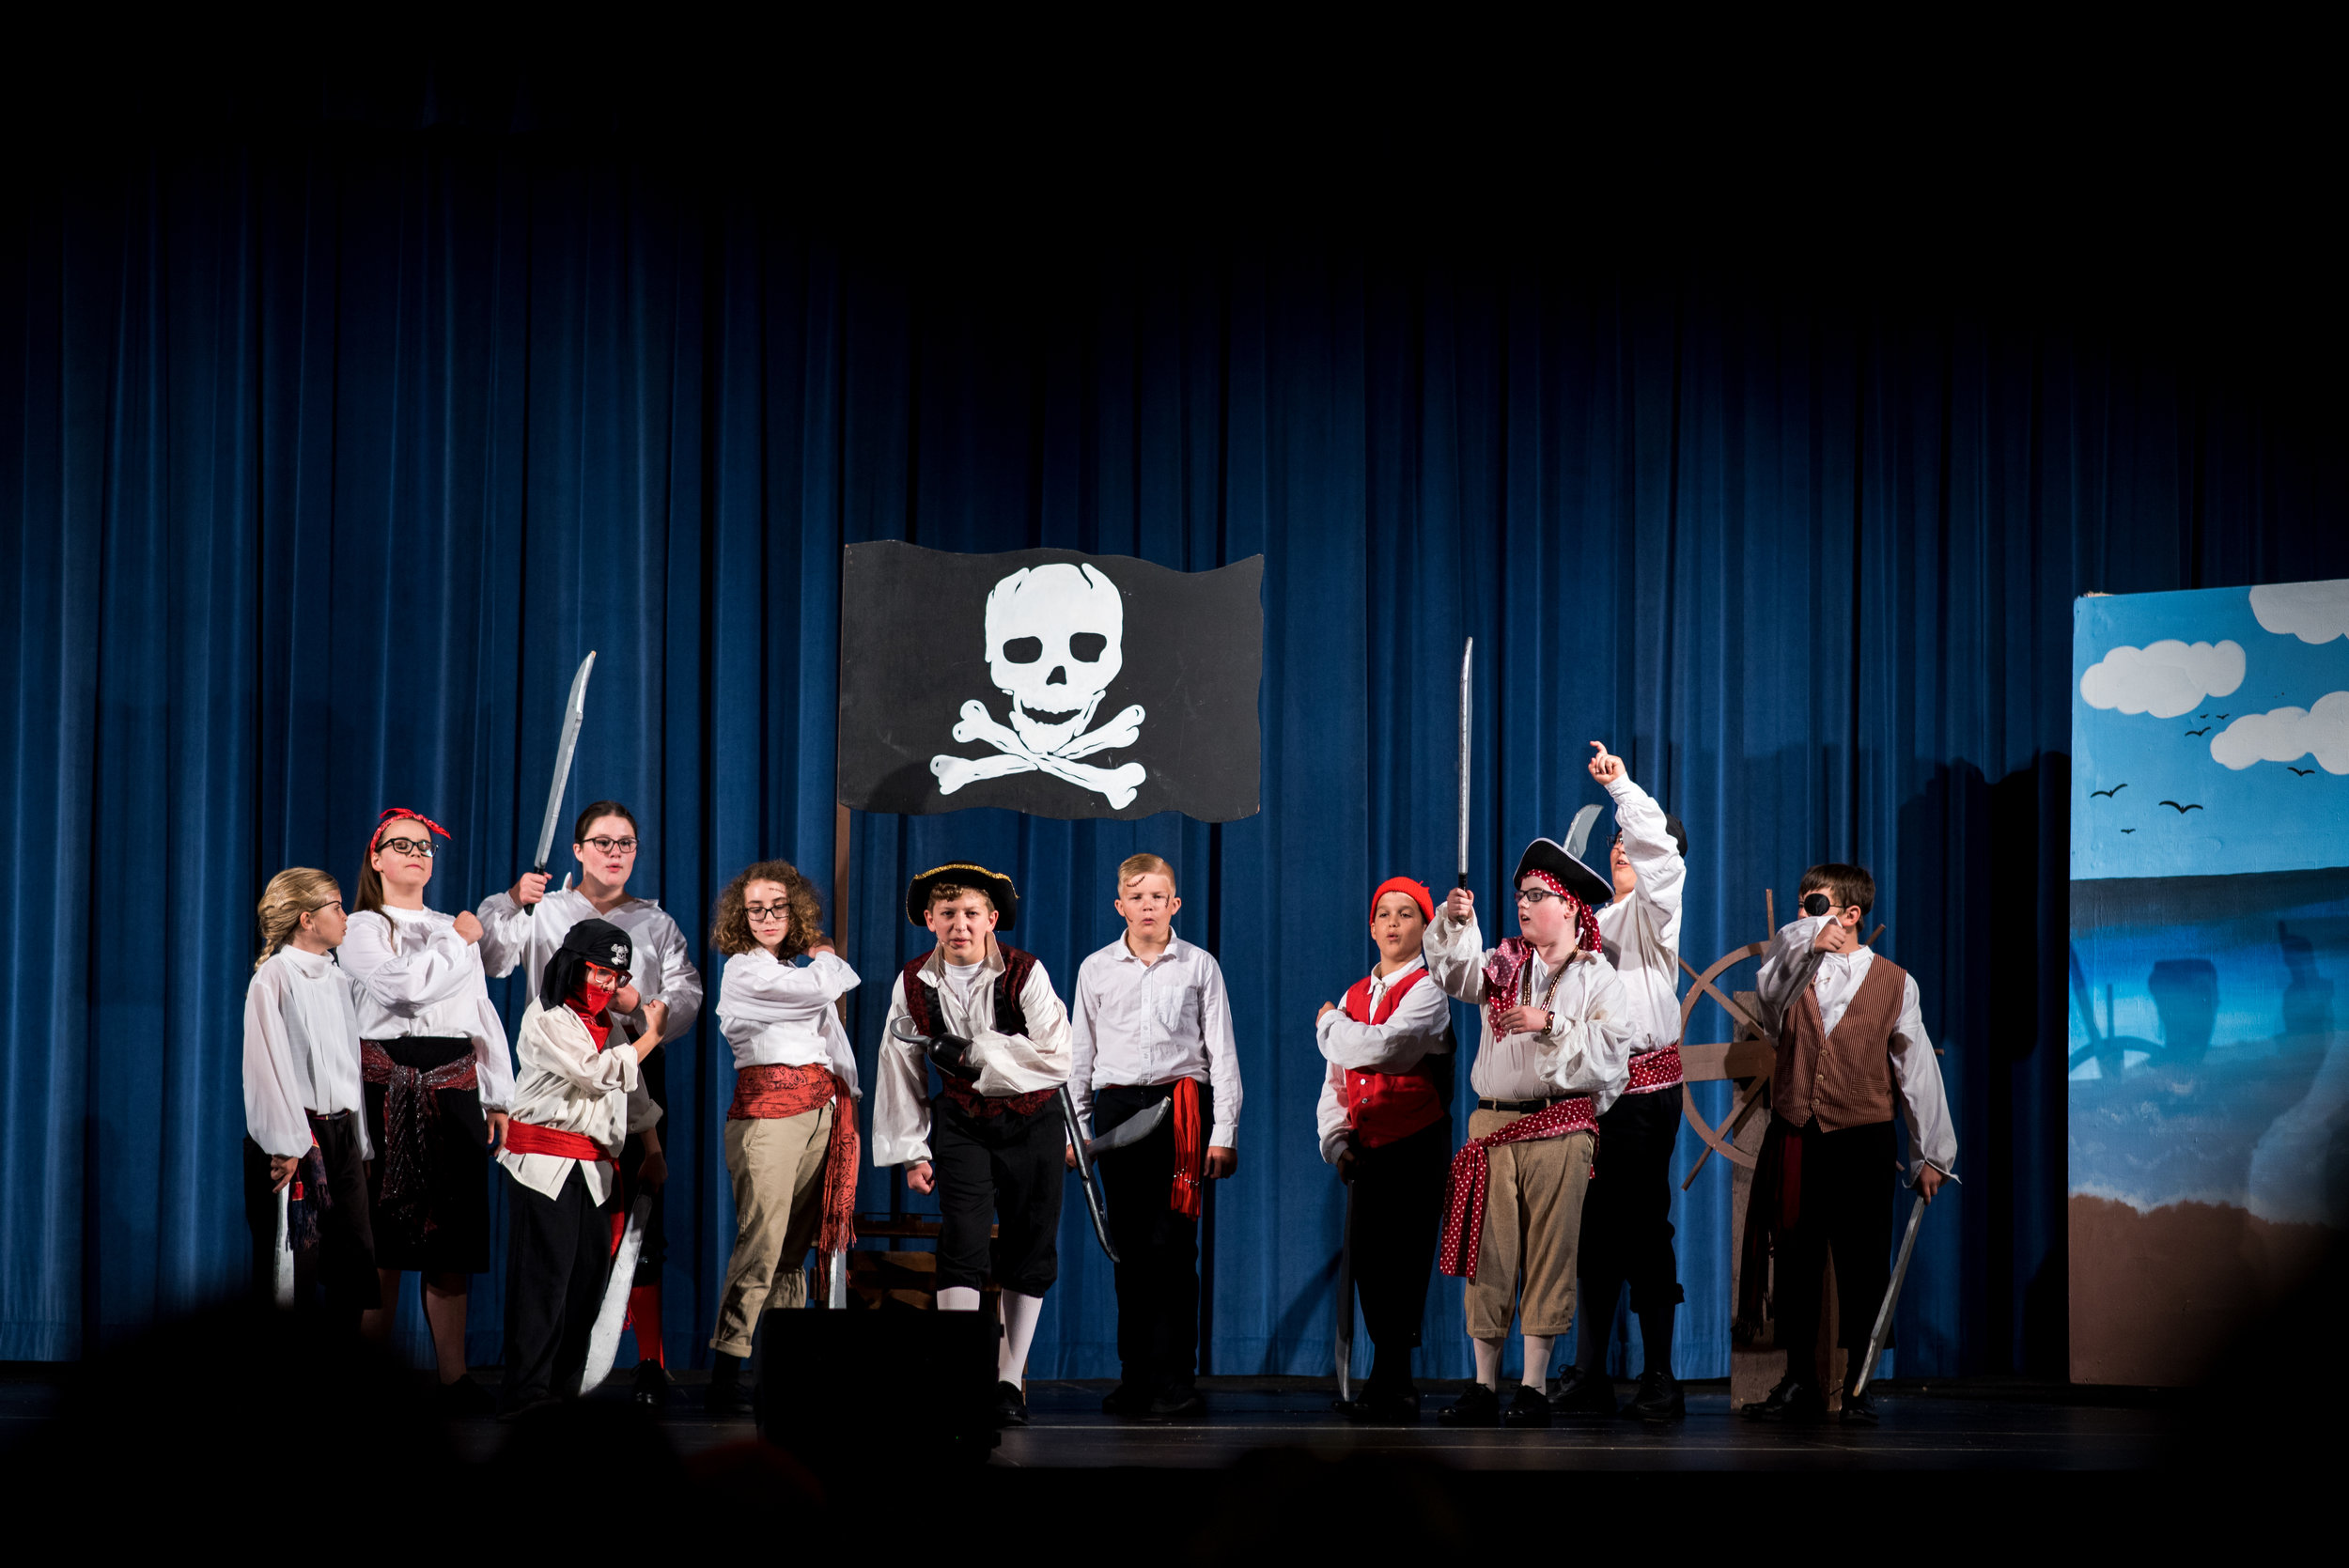 A jolly band of singing pirates led by Captain Hook (sixth from left) played by Cael Kibler.